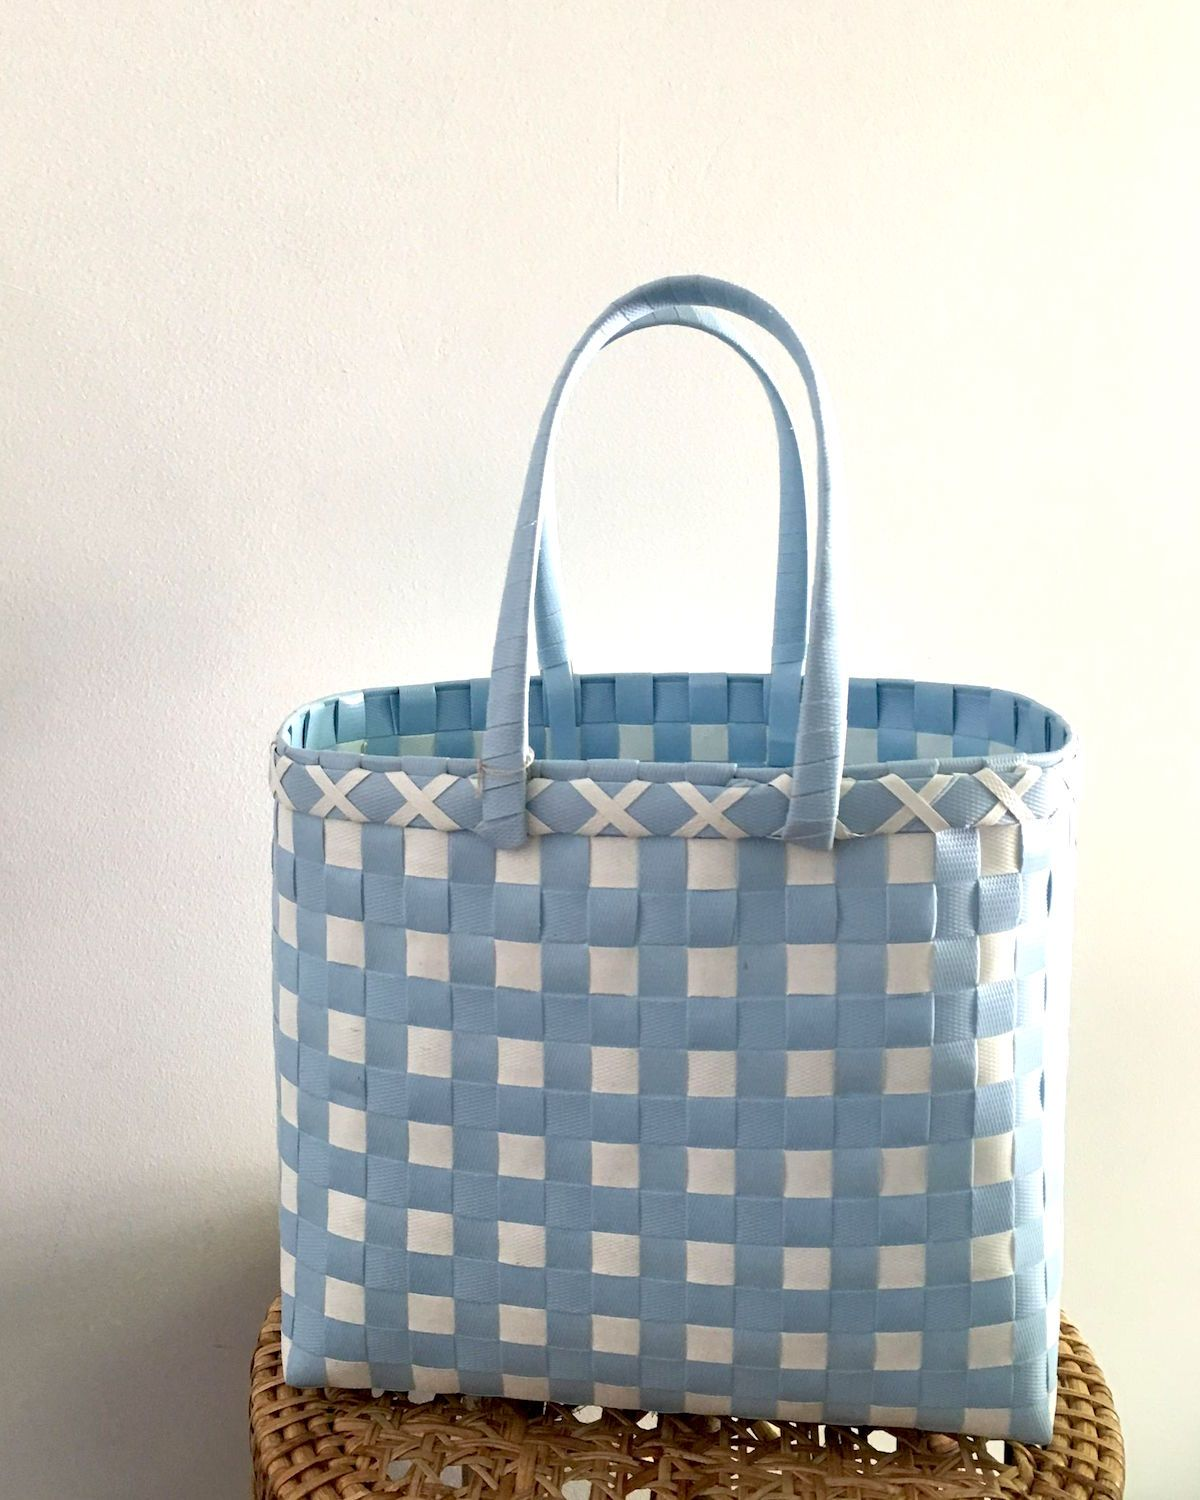 Sky Blue Basket Bag | Limited Edition | Handwoven & Upcycled - YGN Collective